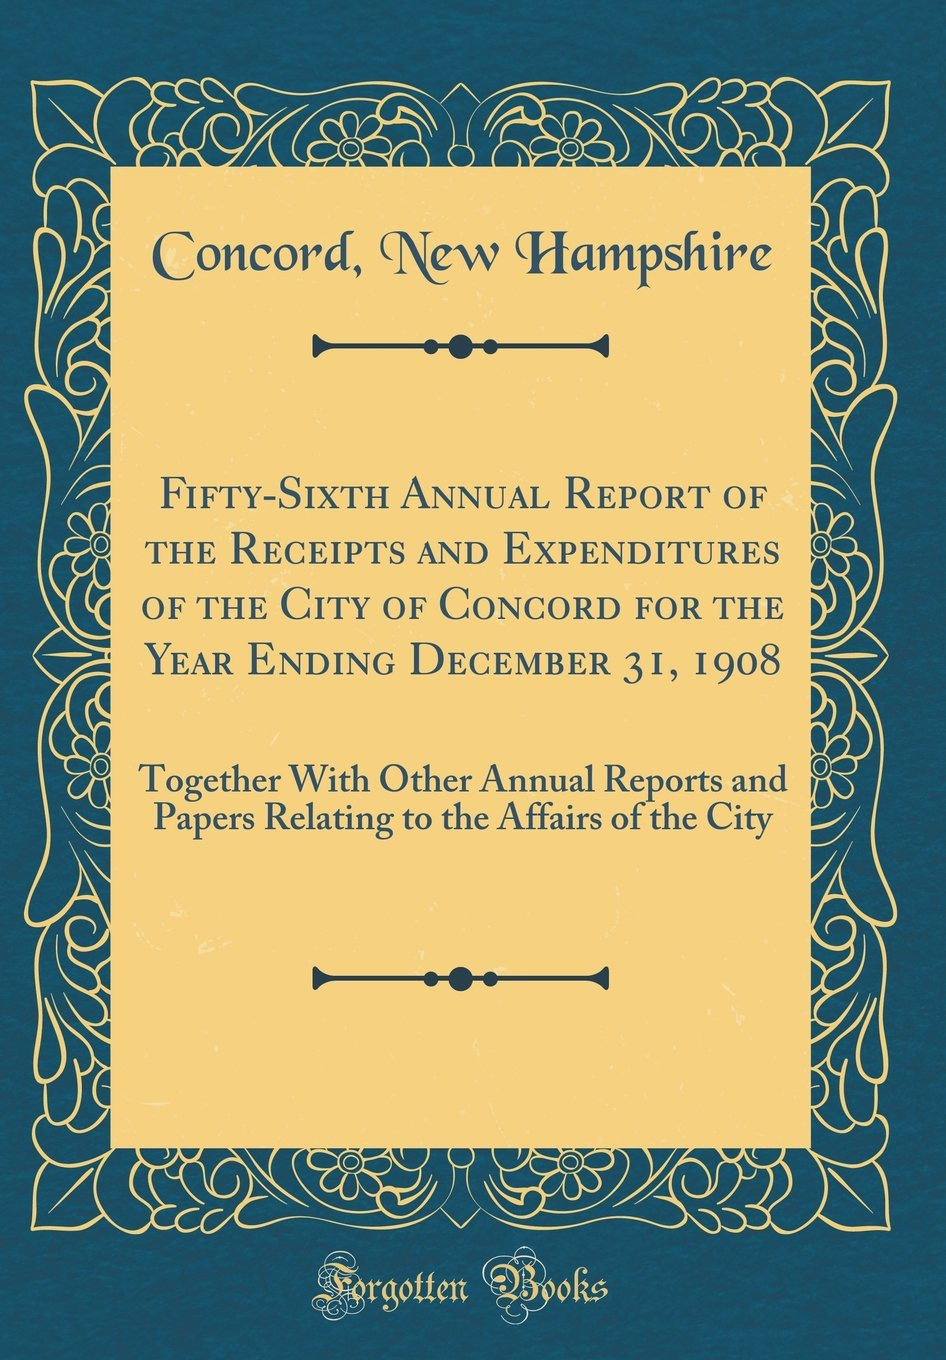 Read Online Fifty-Sixth Annual Report of the Receipts and Expenditures of the City of Concord for the Year Ending December 31, 1908: Together With Other Annual ... to the Affairs of the City (Classic Reprint) ebook